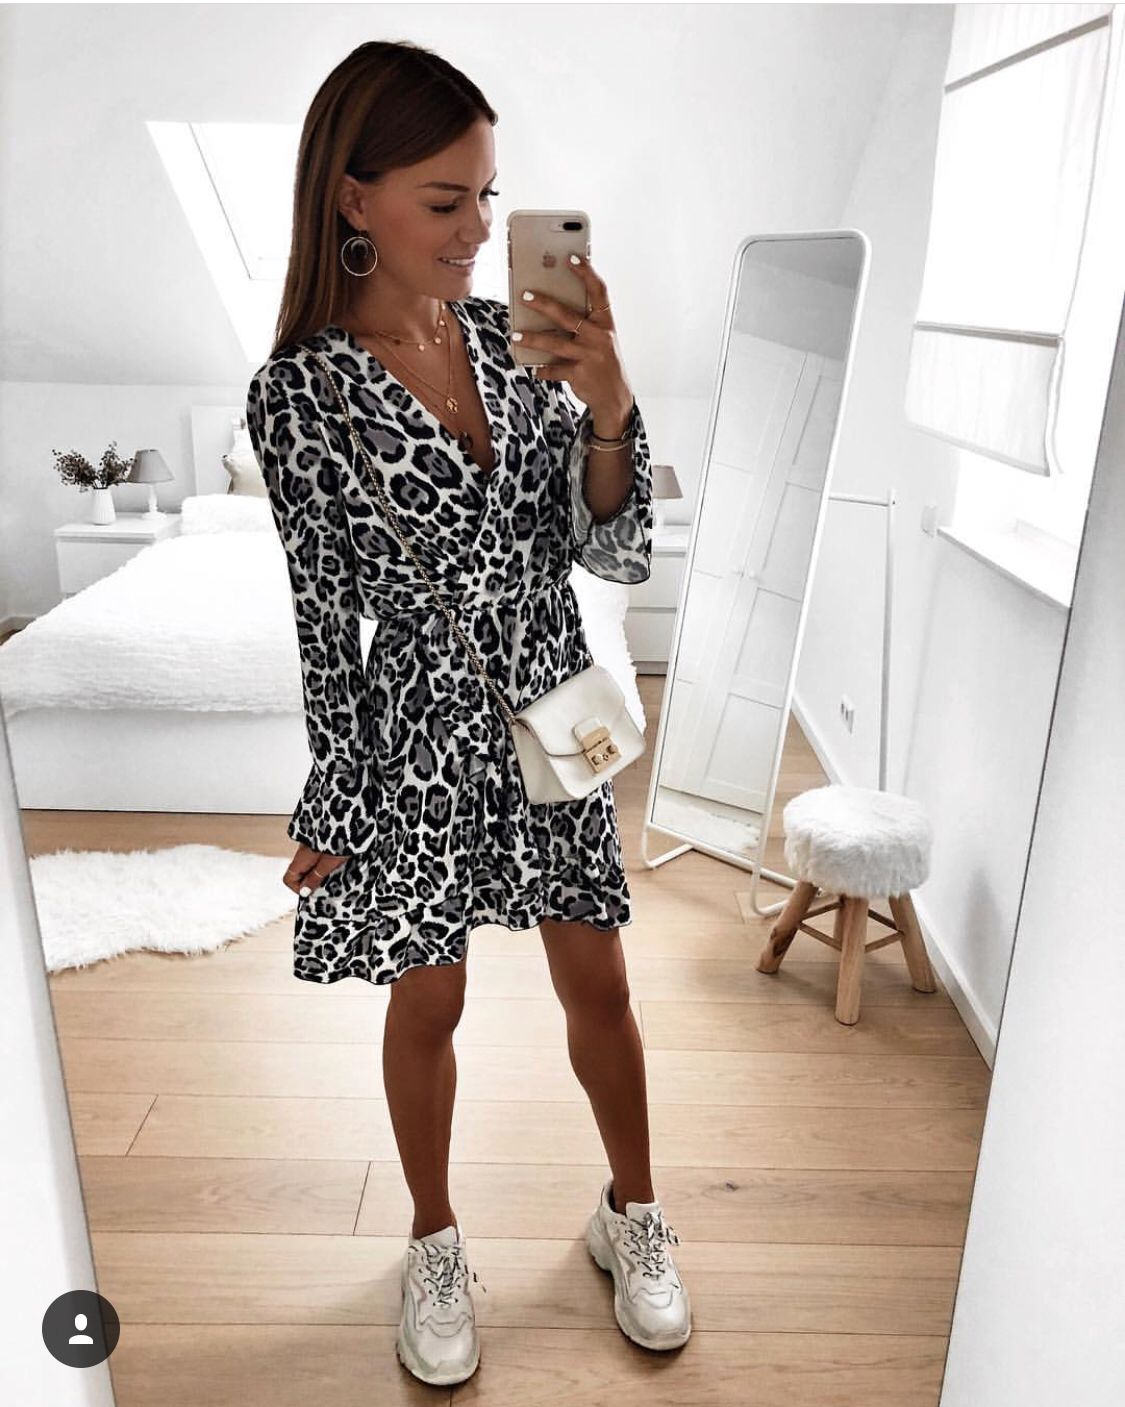 Photo of #мода  #ootd  #outfit #outfitfall  #outfitoftheday #fashion  #streetstyles